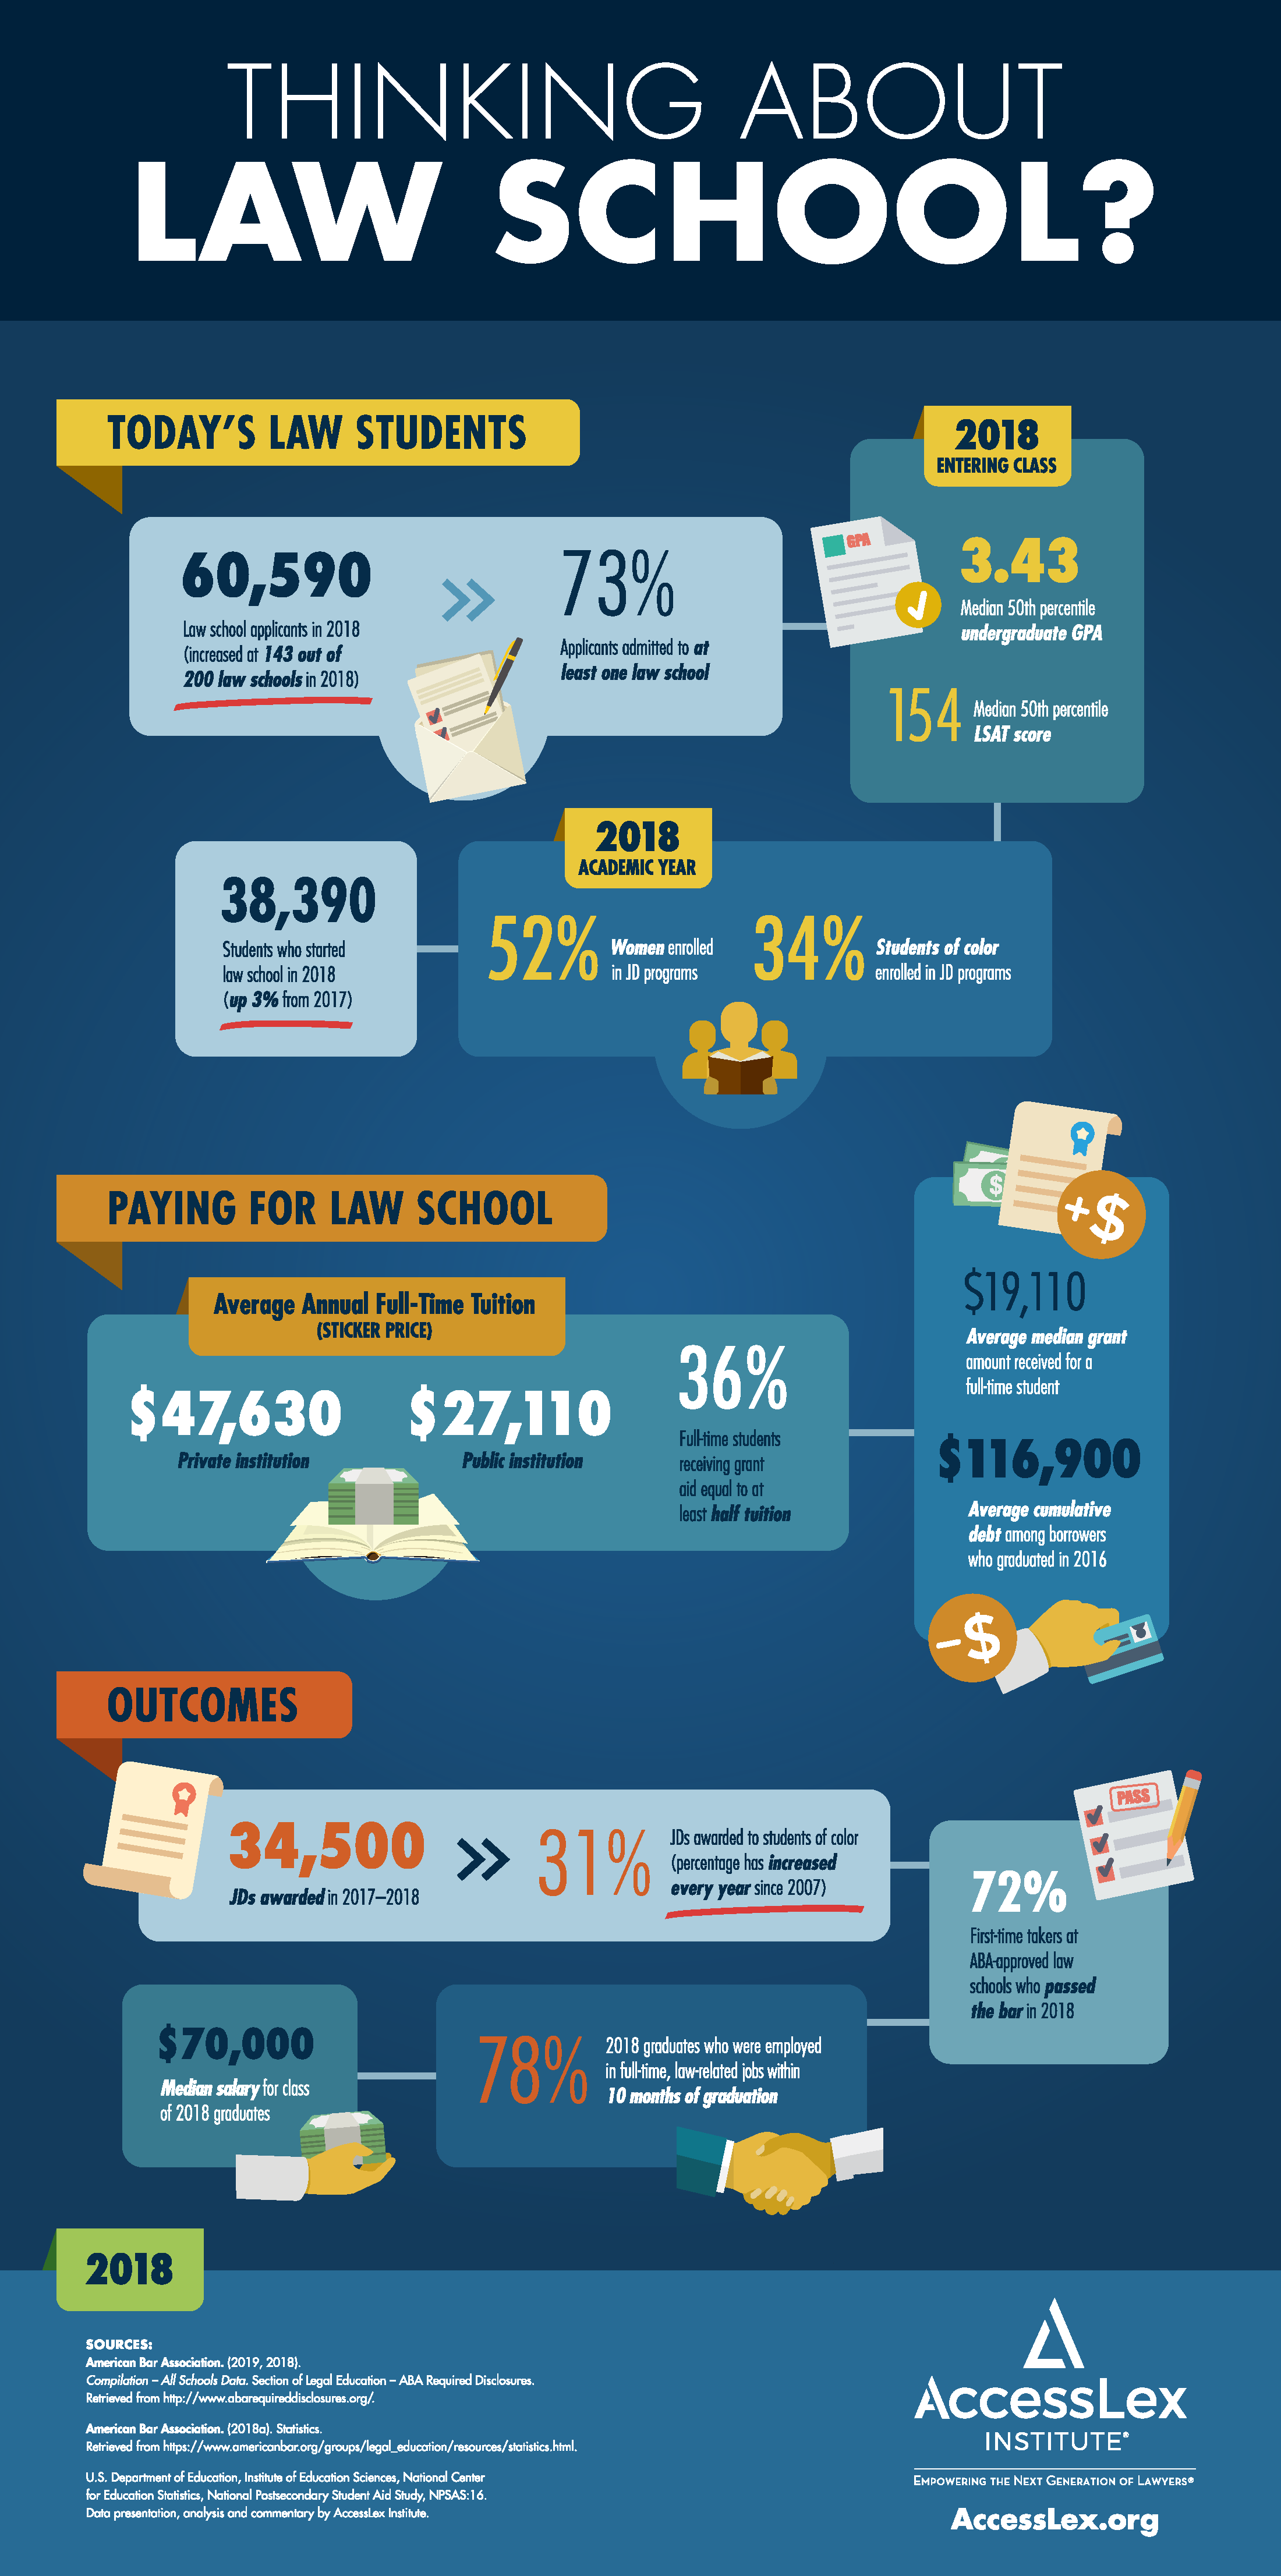 AccessLex Law School by the Numbers Infographic